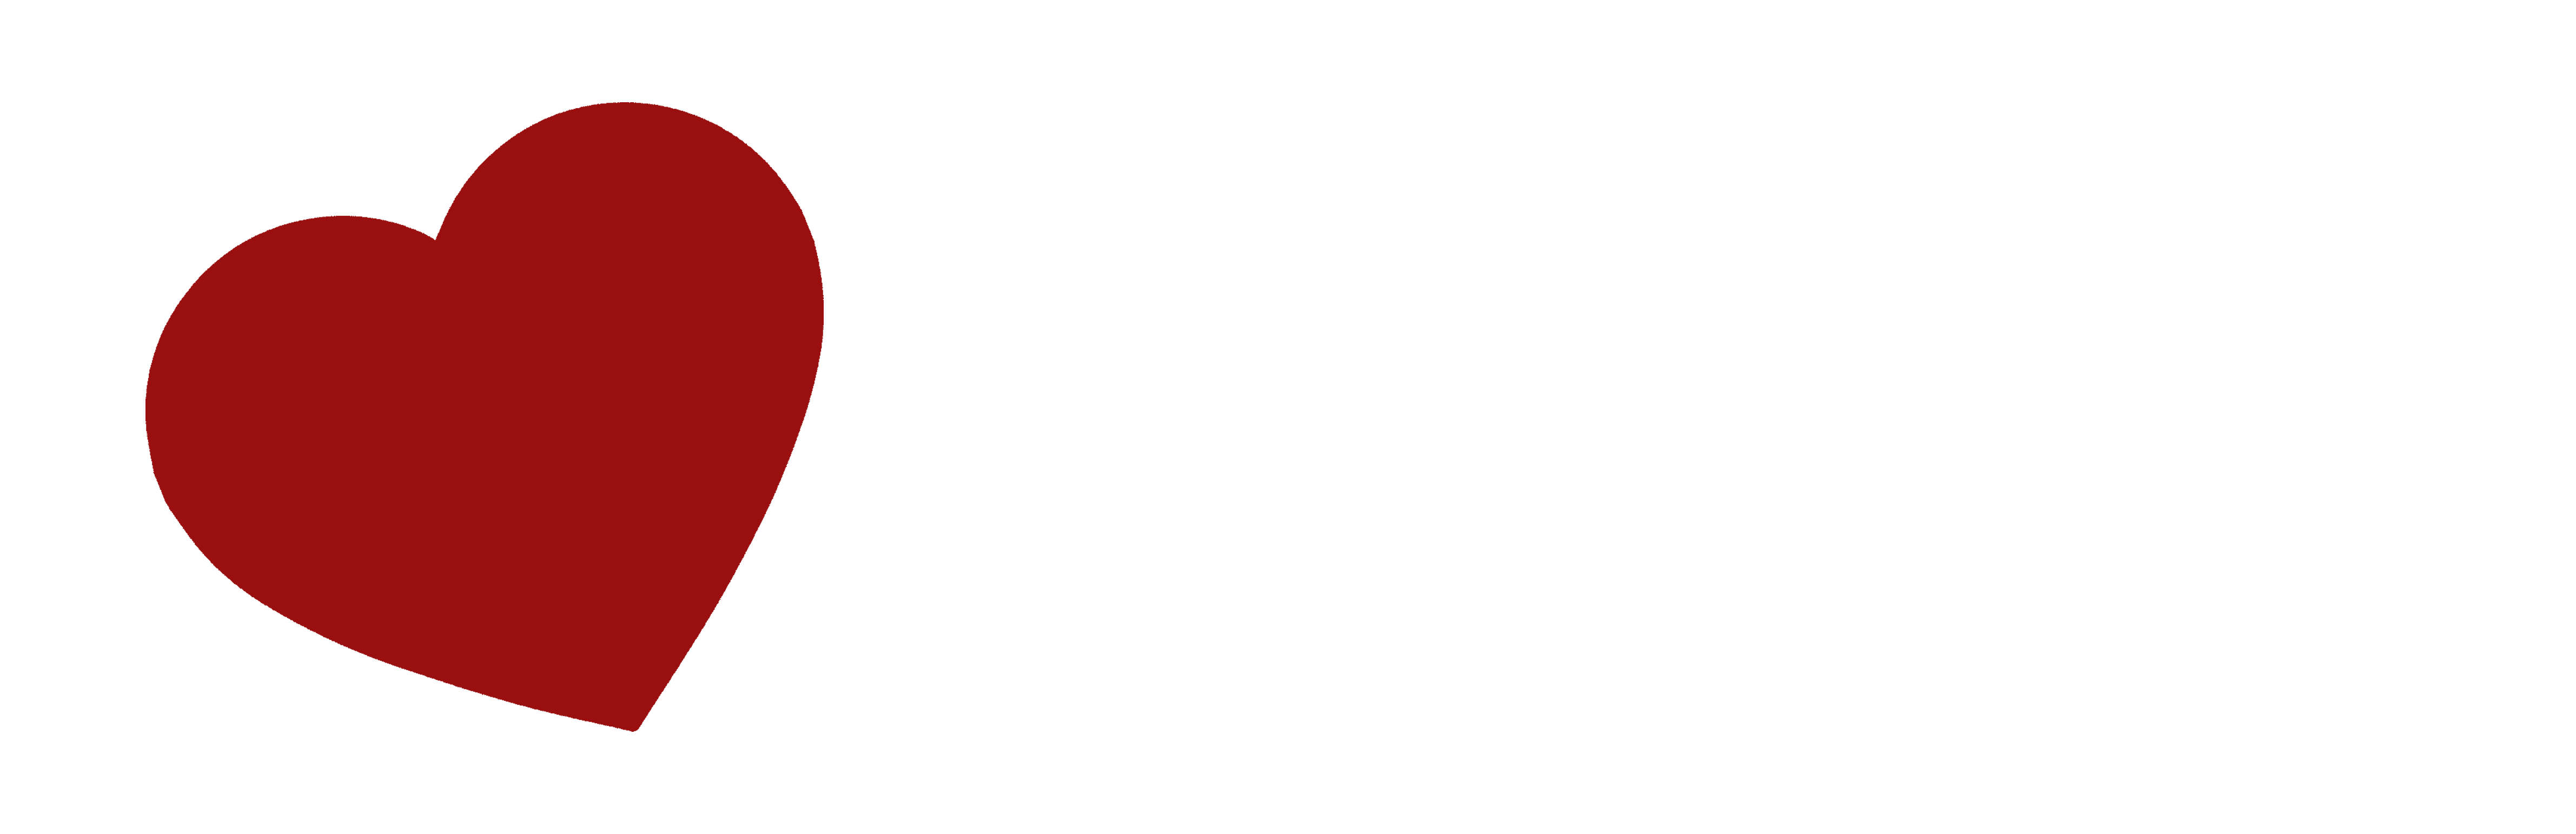 Resources - People of Color Kink & Leather Experience